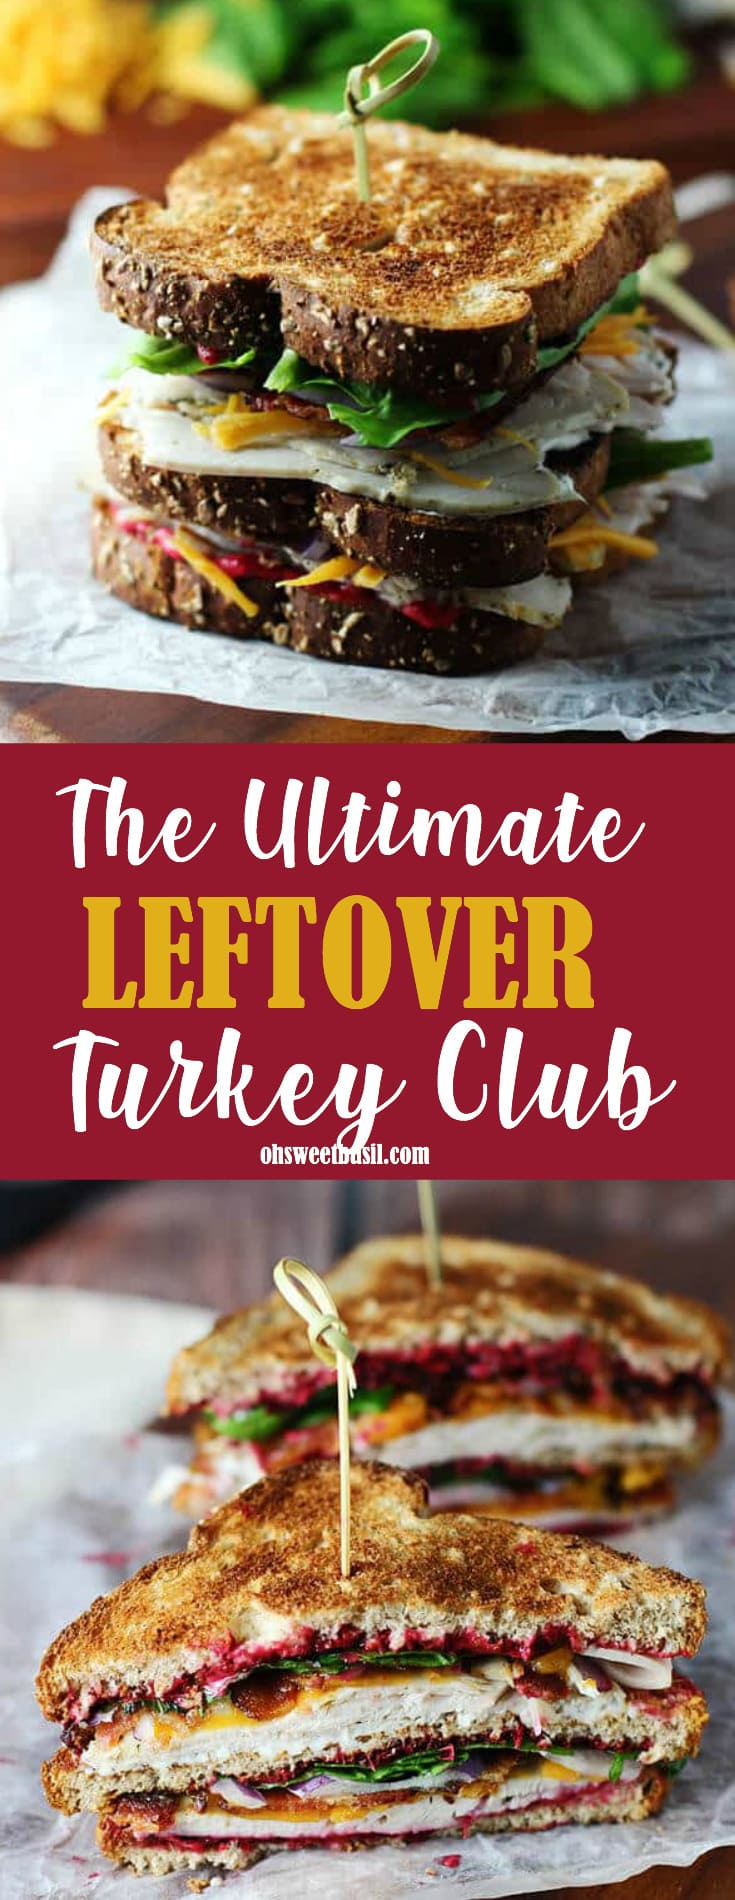 The Ultimate Leftover Turkey Club Sandwich